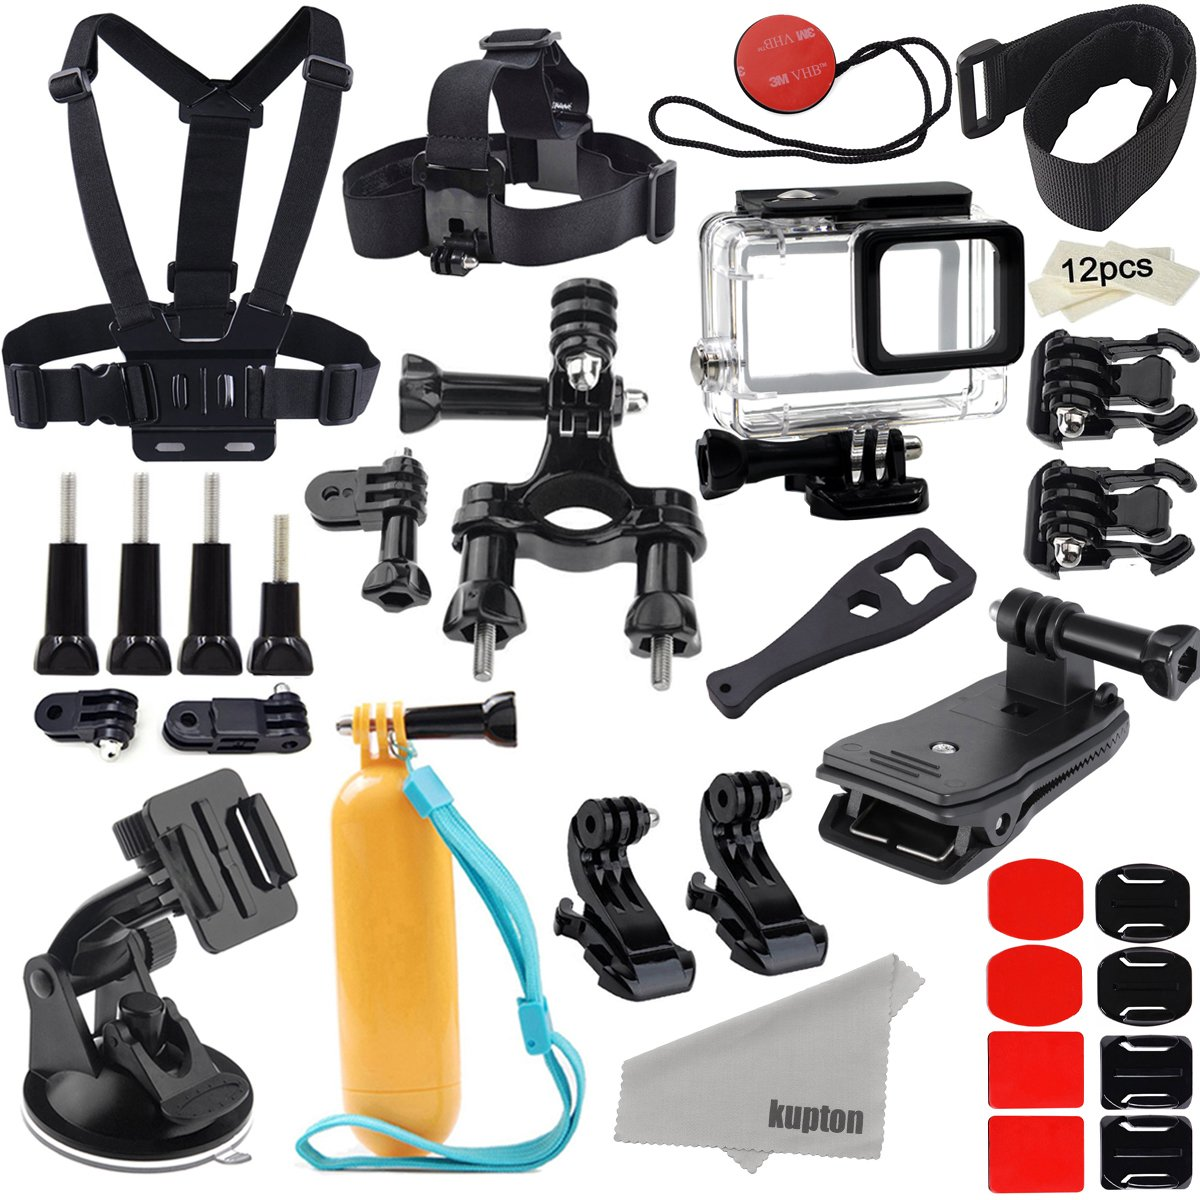 Kupton Accessories for GoPro Hero 7 Black/Hero 6/ Hero 5/ Hero 2018 Action Camera Include Waterproof Housing Case Chest Head Strap Bike Car Mount Floating Grip Bundle Set Kit for Go Pro Hero 7 6 5 by Kupton